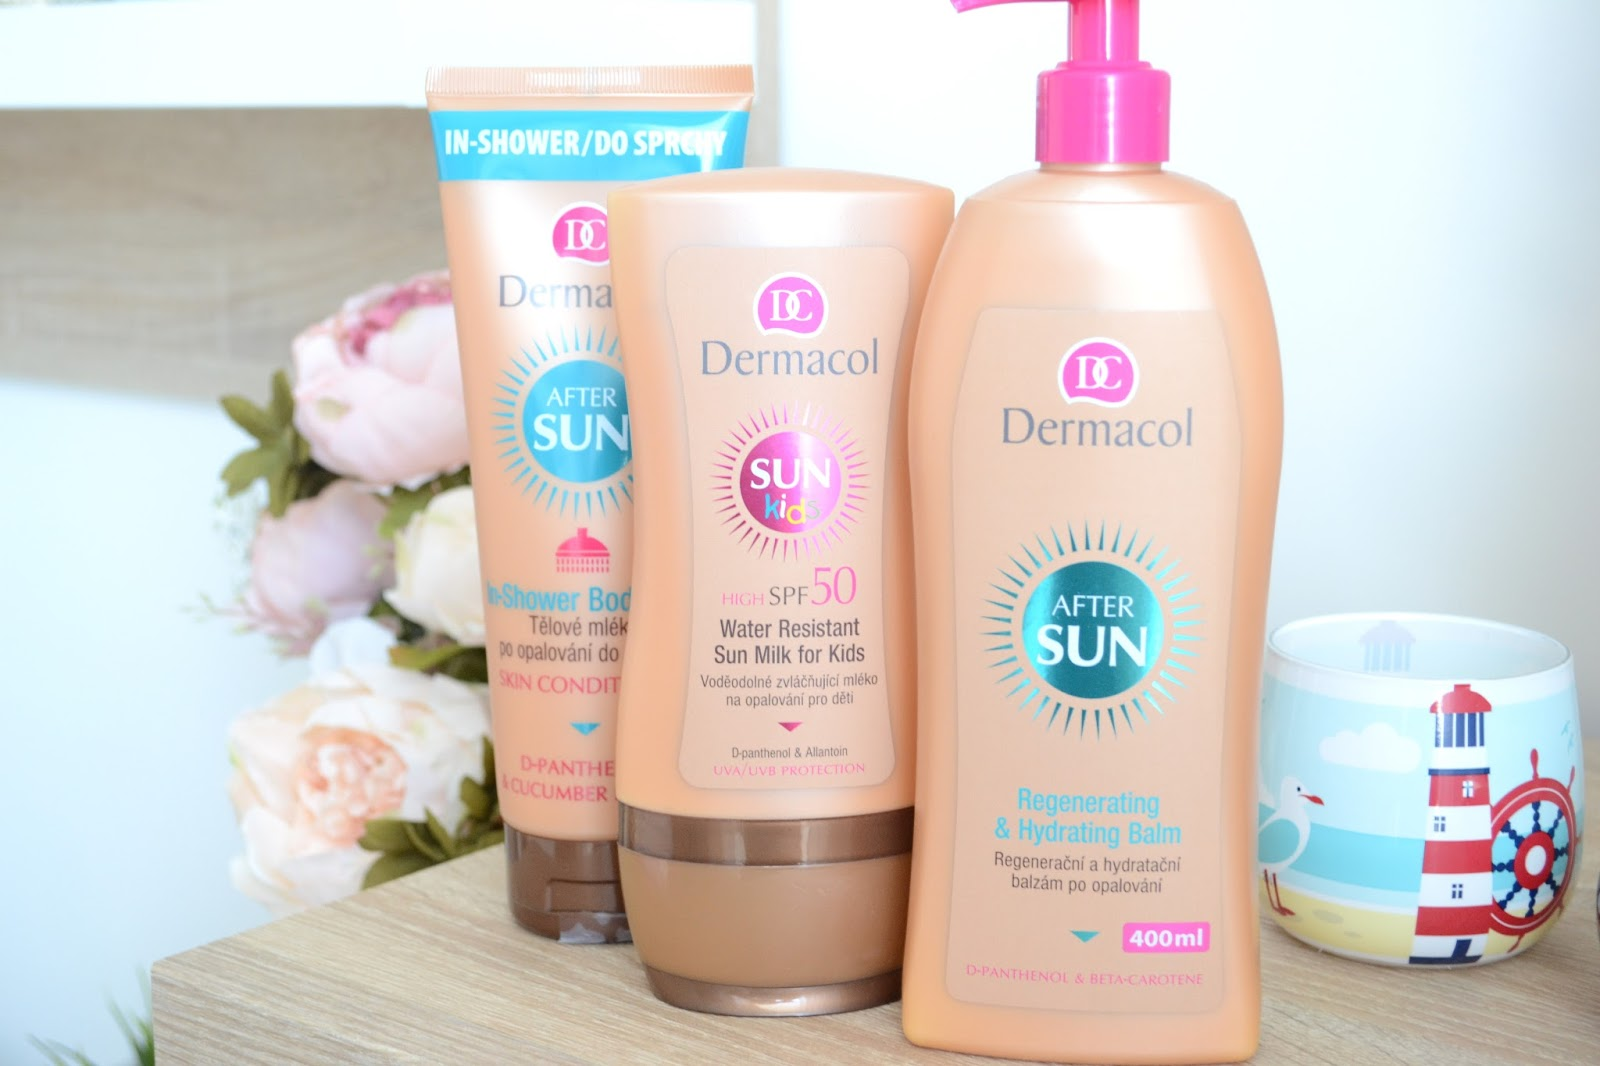 kem chống nắng Dermacol Suncare Regenerating & hydrating balm